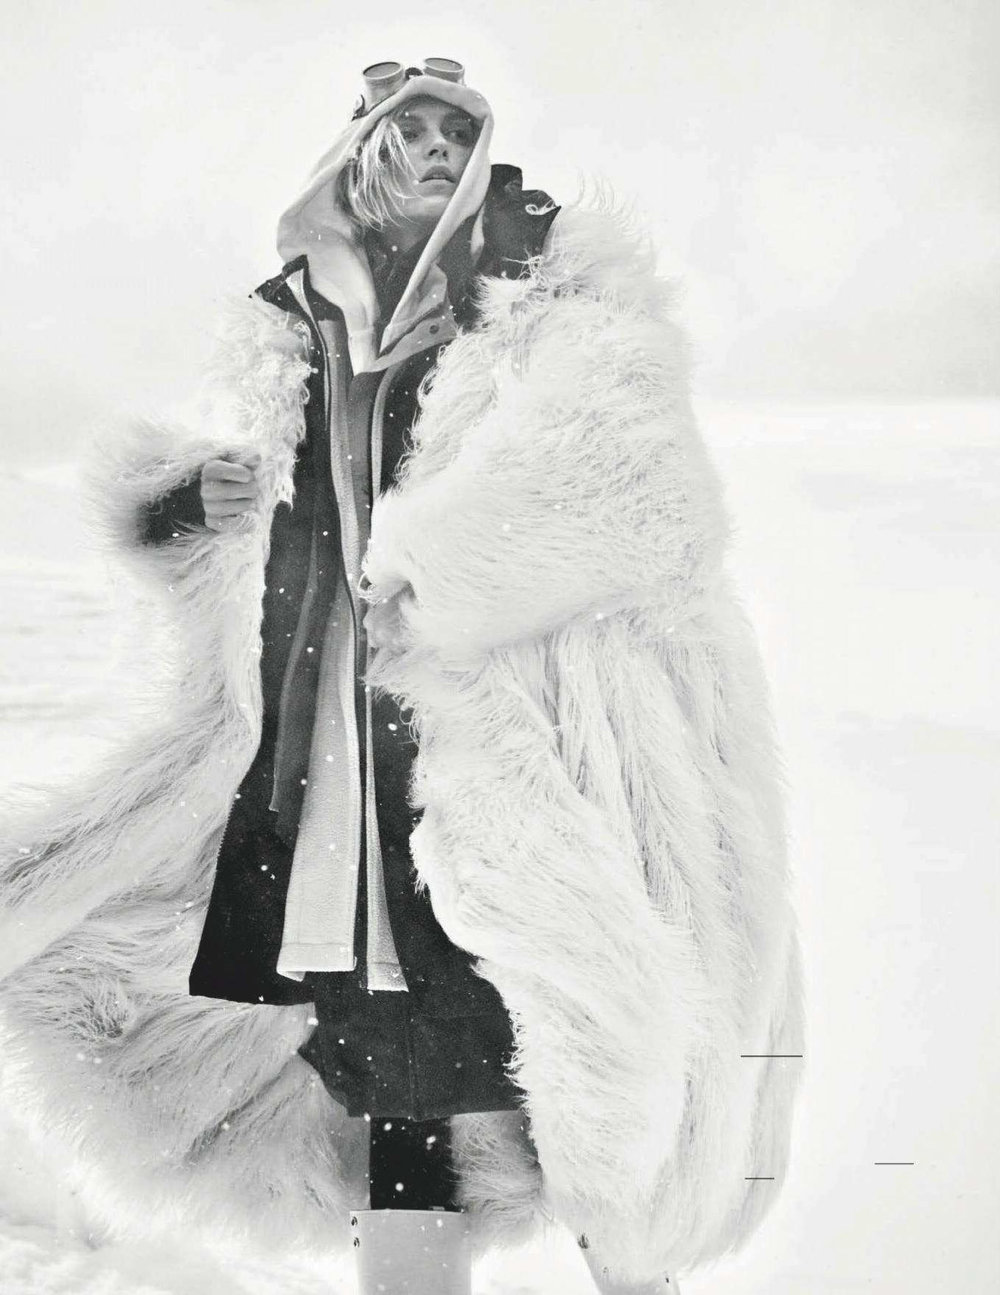 Anja Rubik by Giampaolo Sgura for Vogue Germany Dec 2018 (13).jpg